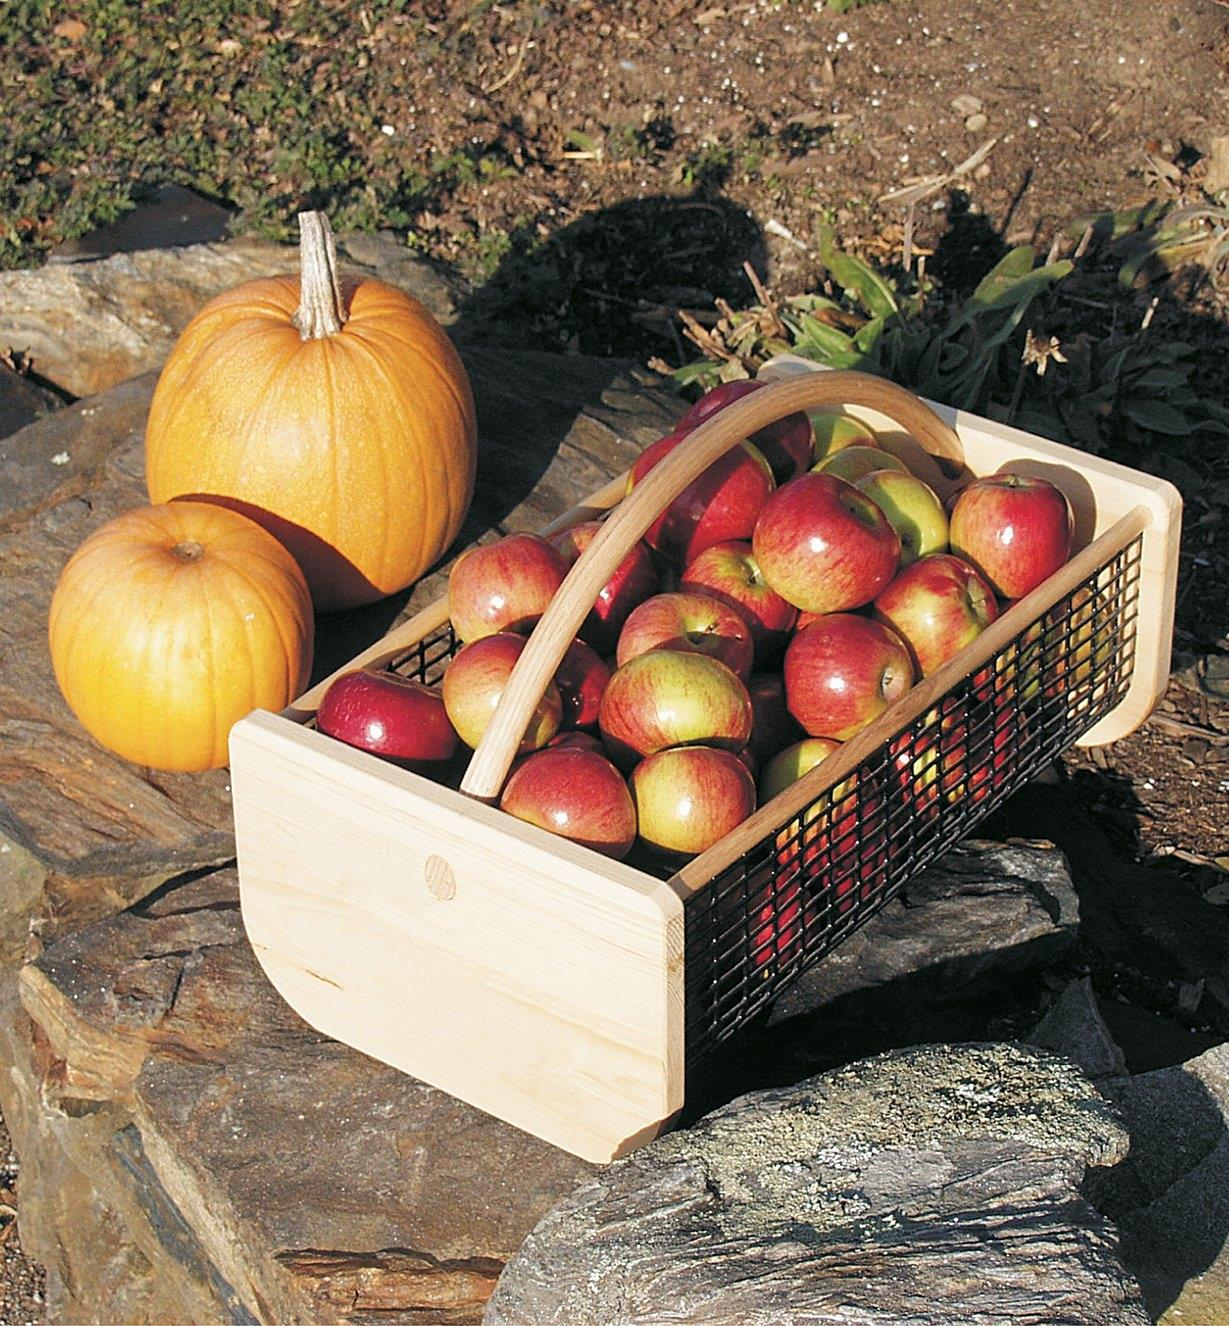 Large Maine garden hod filled with apples sits next to two pumpkins on some rocks